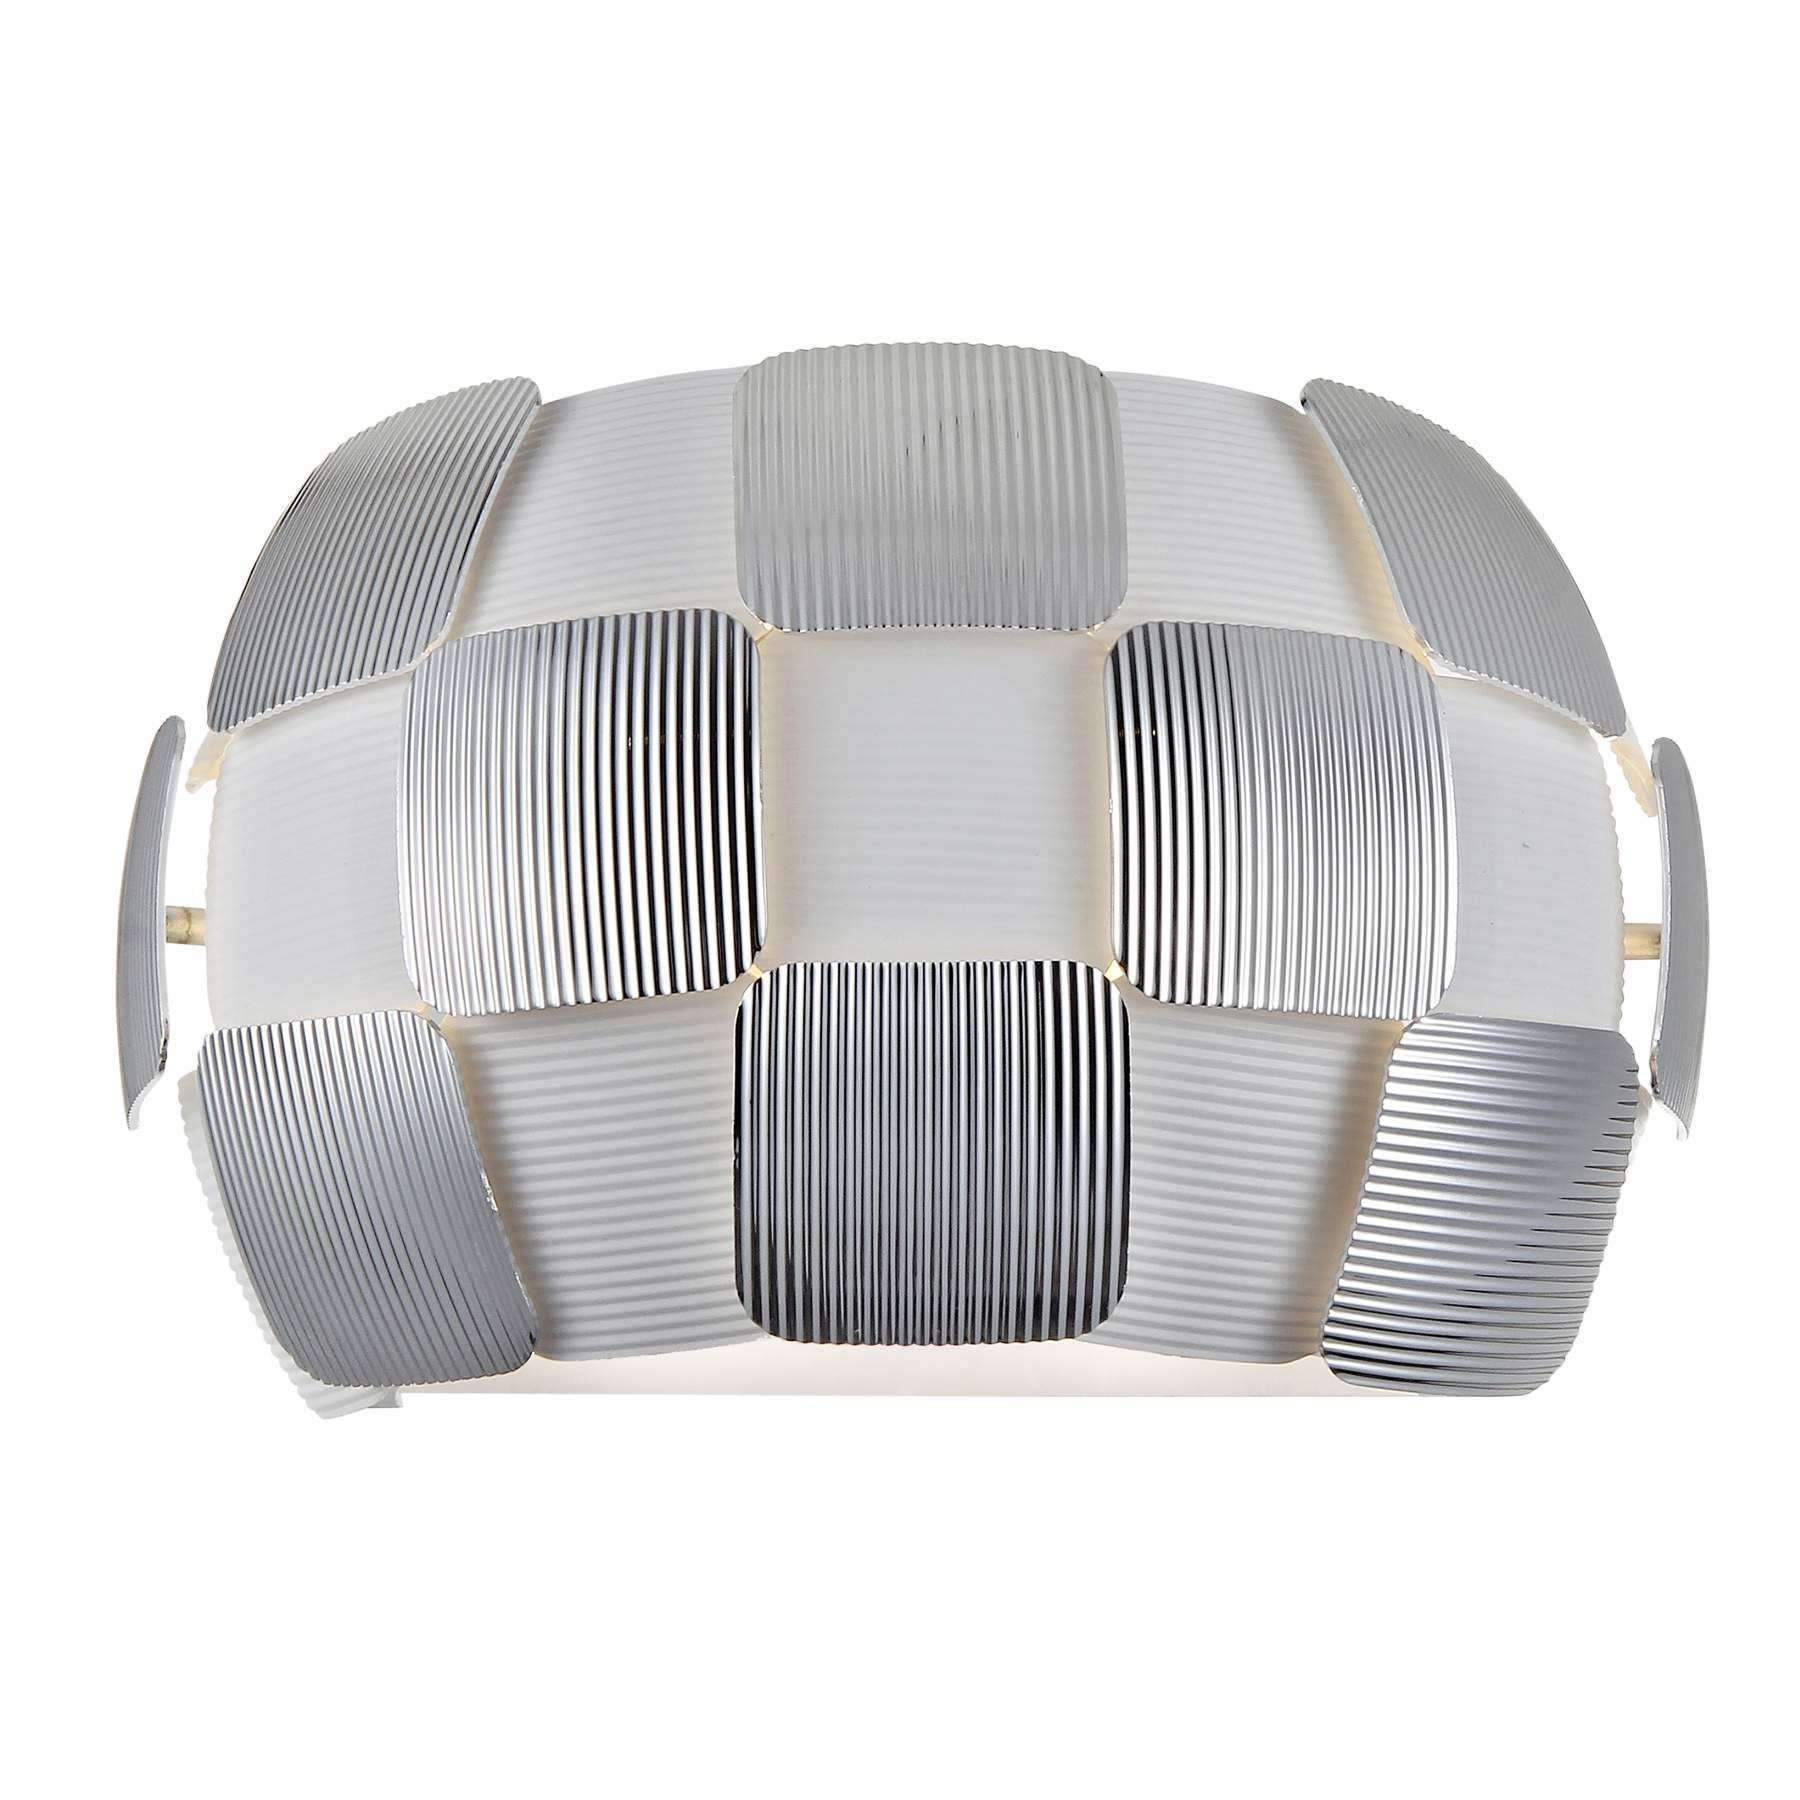 Layers Dimmable LED Wall Fixture